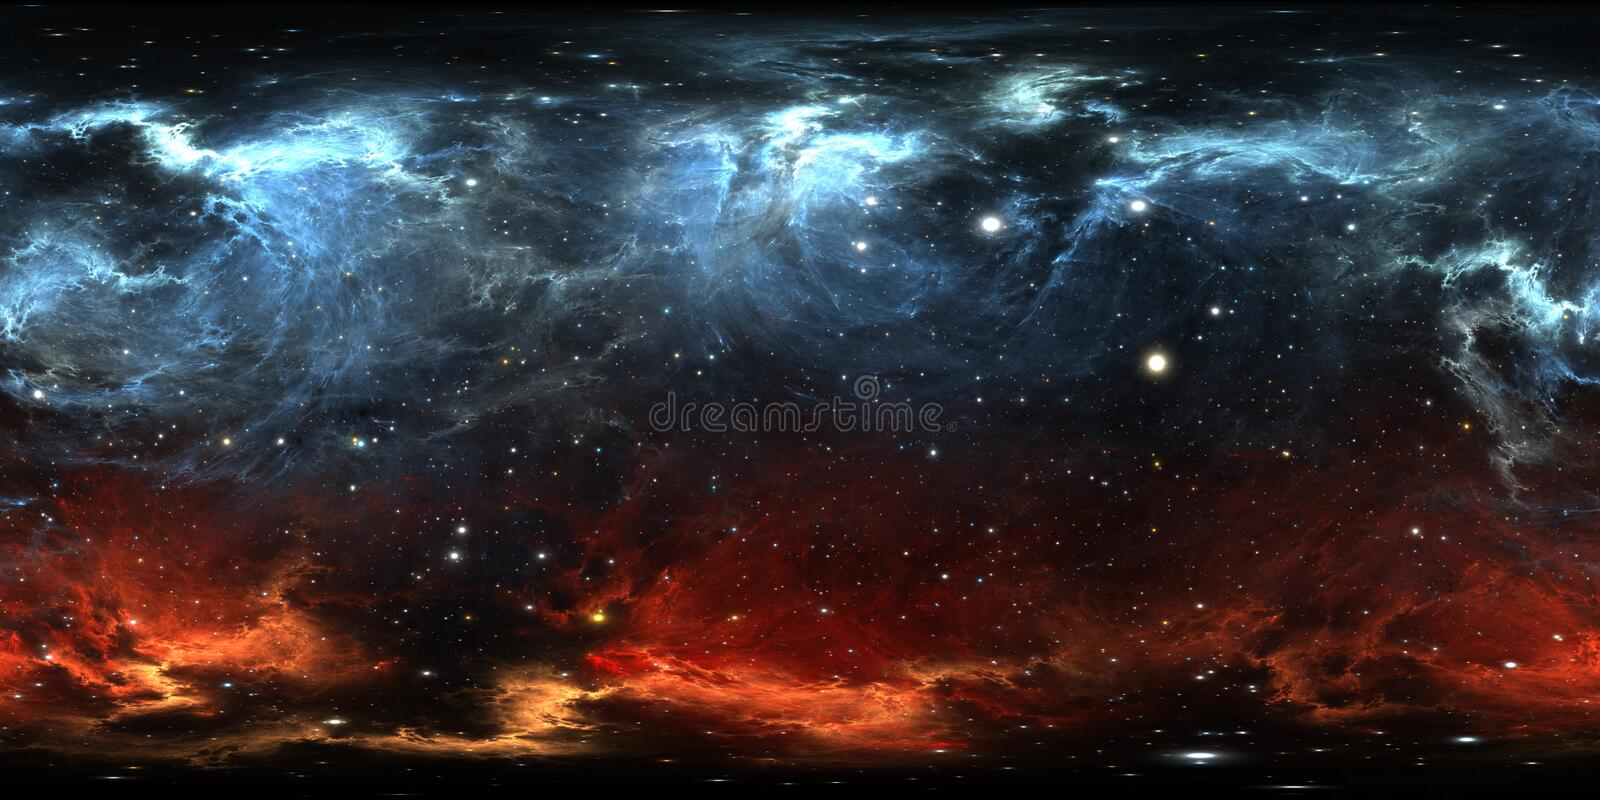 360 degree space nebula panorama, equirectangular projection, environment map. HDRI spherical panorama. Space background. With nebula and stars. 3d illustration royalty free illustration